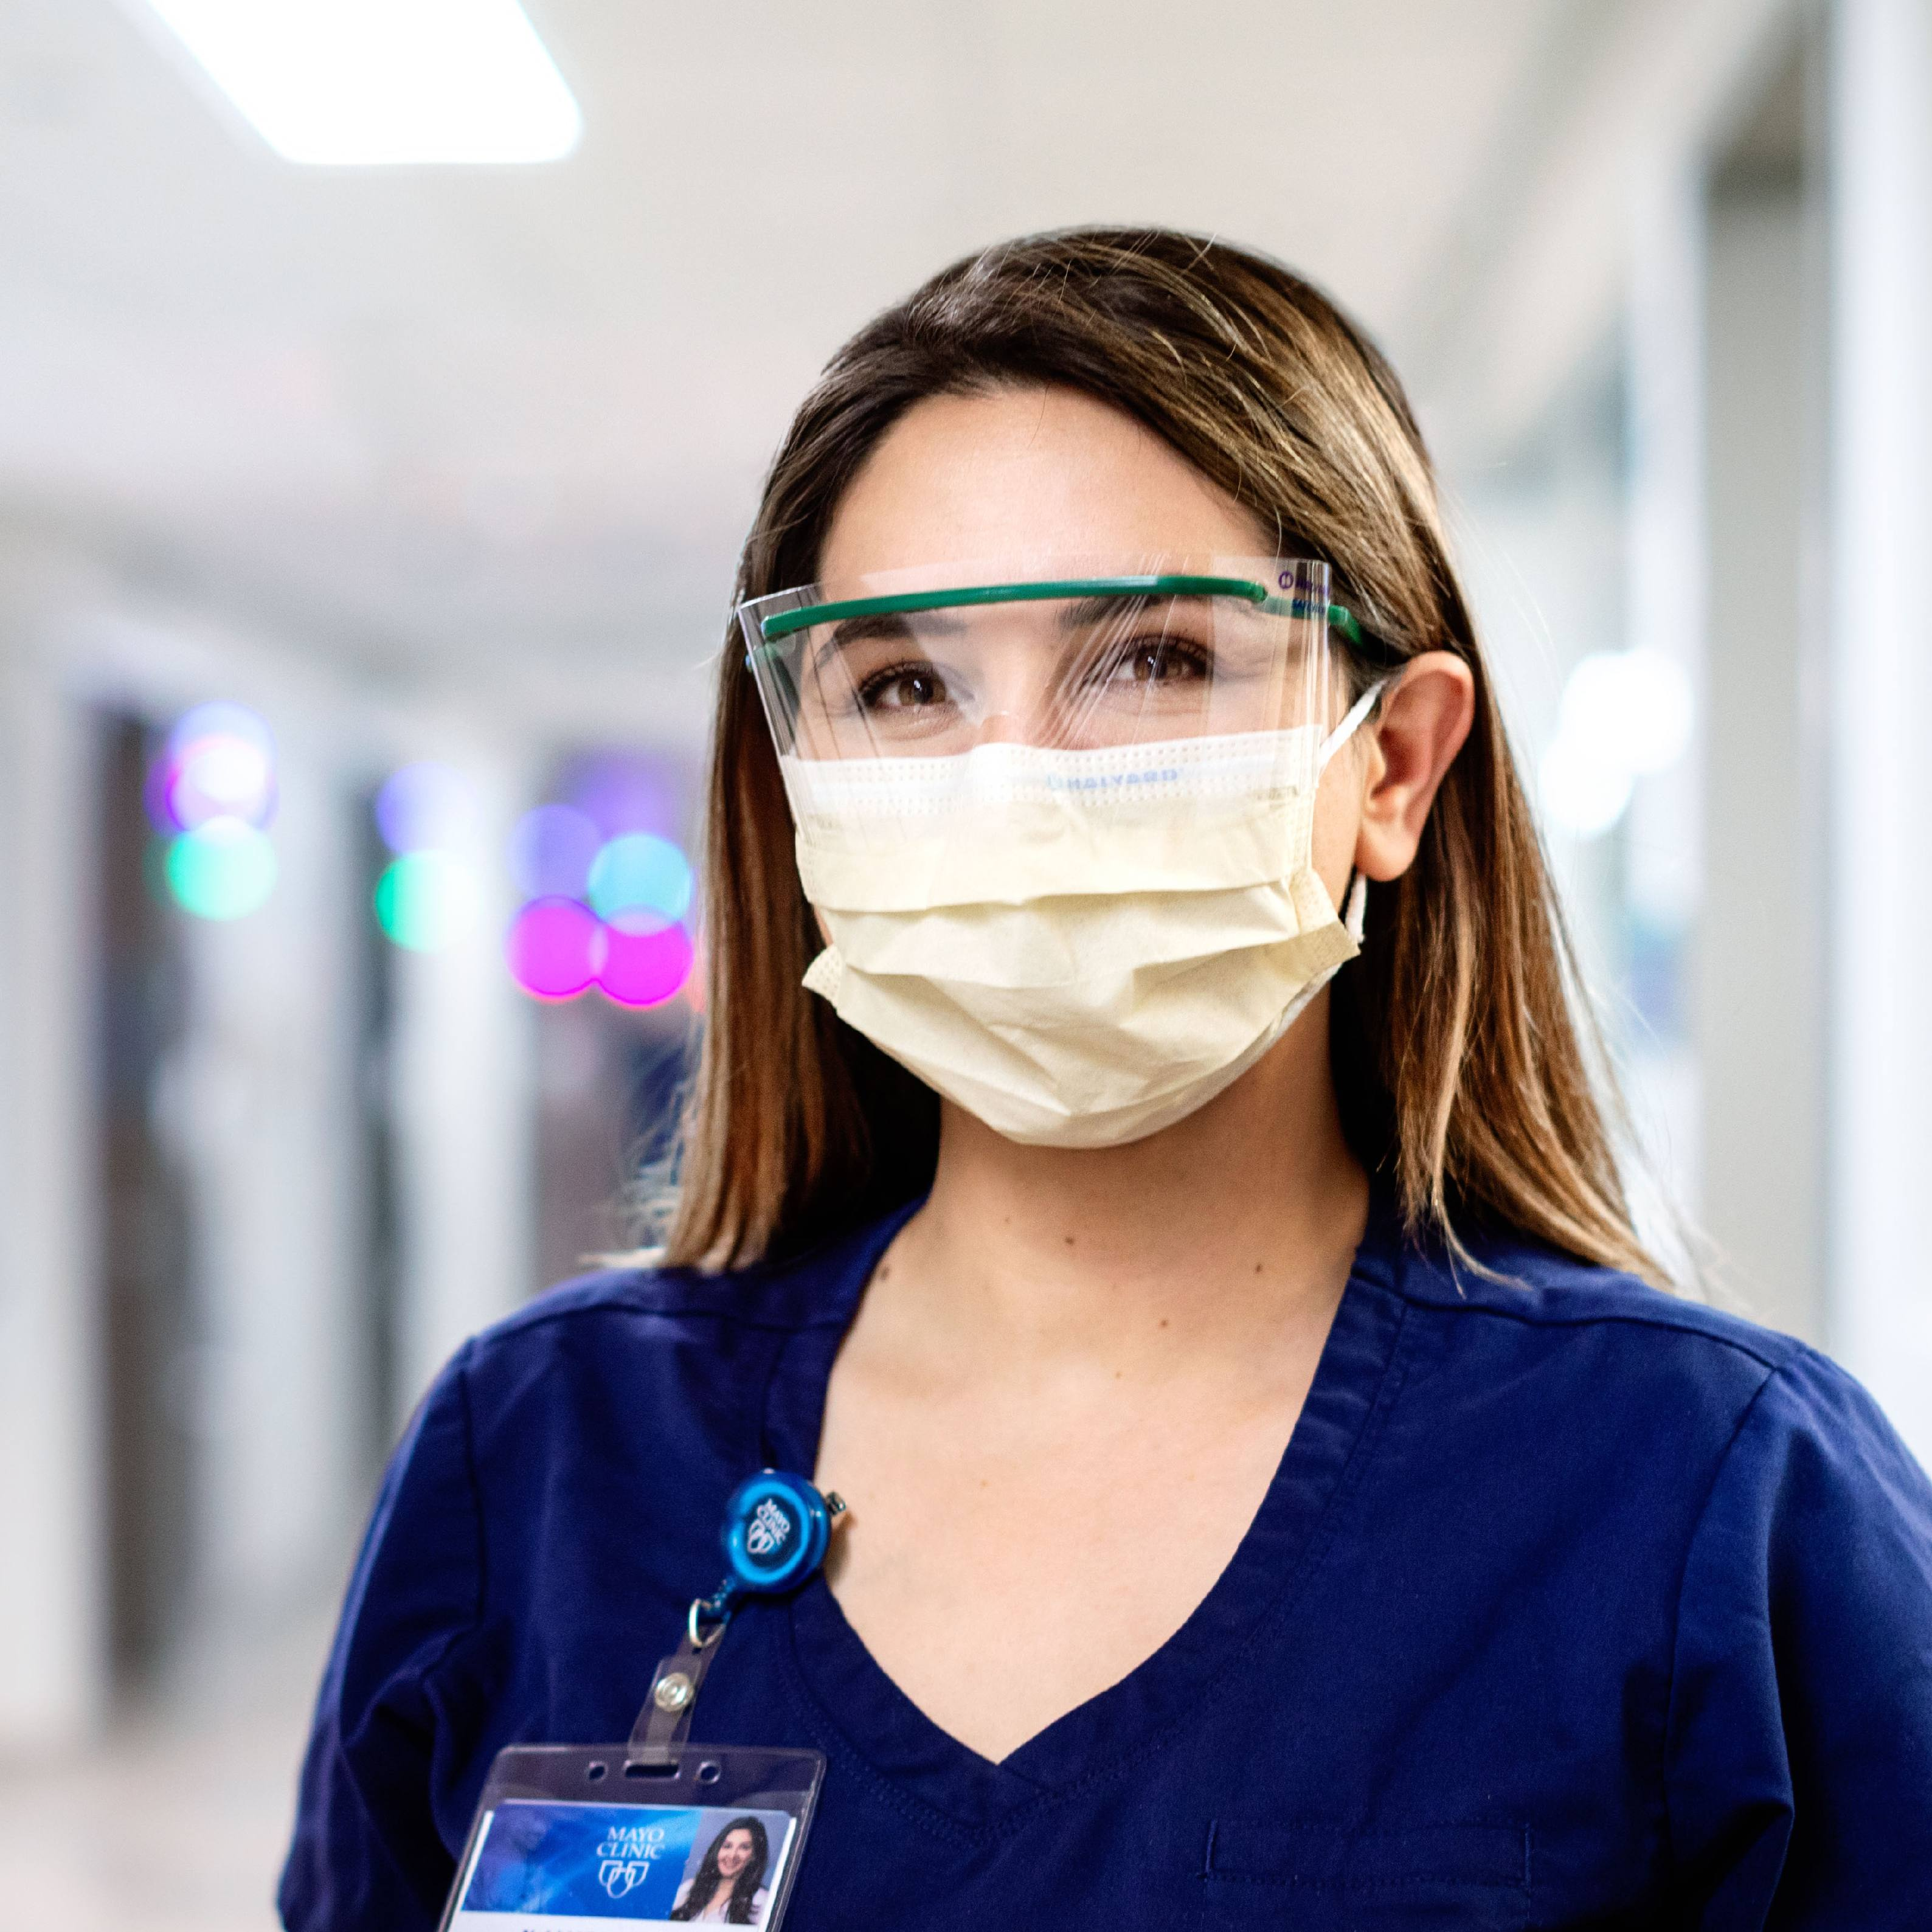 a white or Latino woman in Mayo Clinic medical blue scrubs and wearing eye protection and a face mask in the hospital corridor